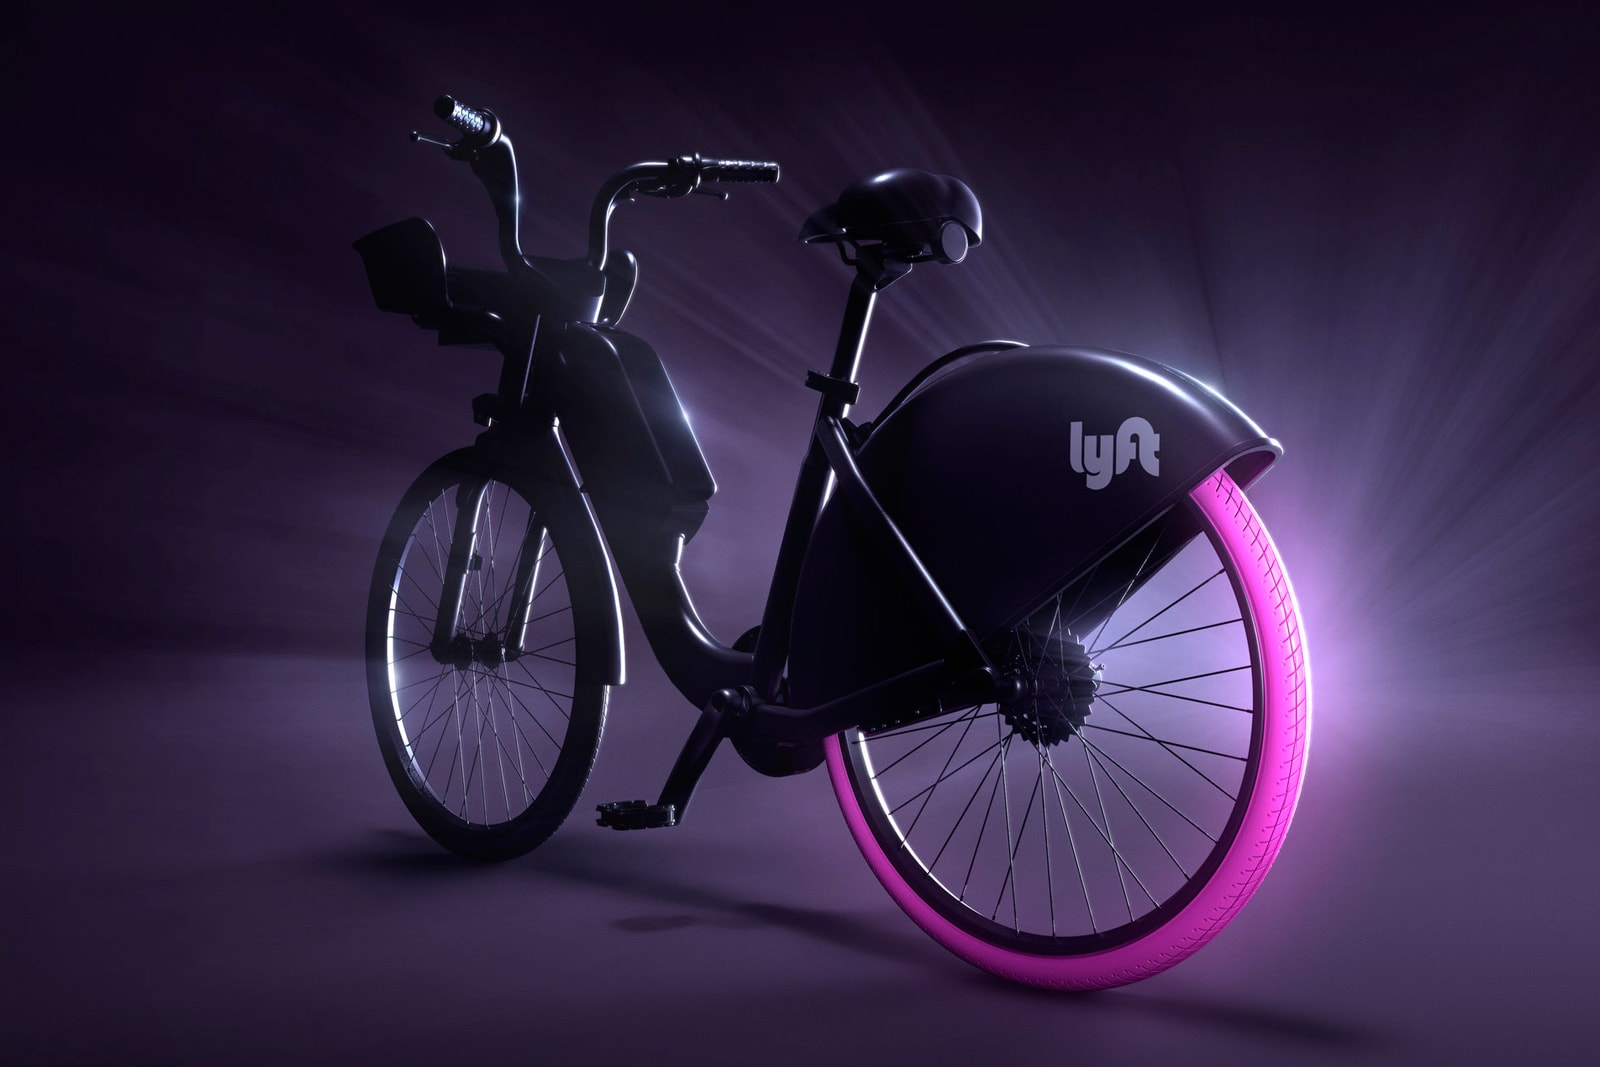 Lyft Bike teaser